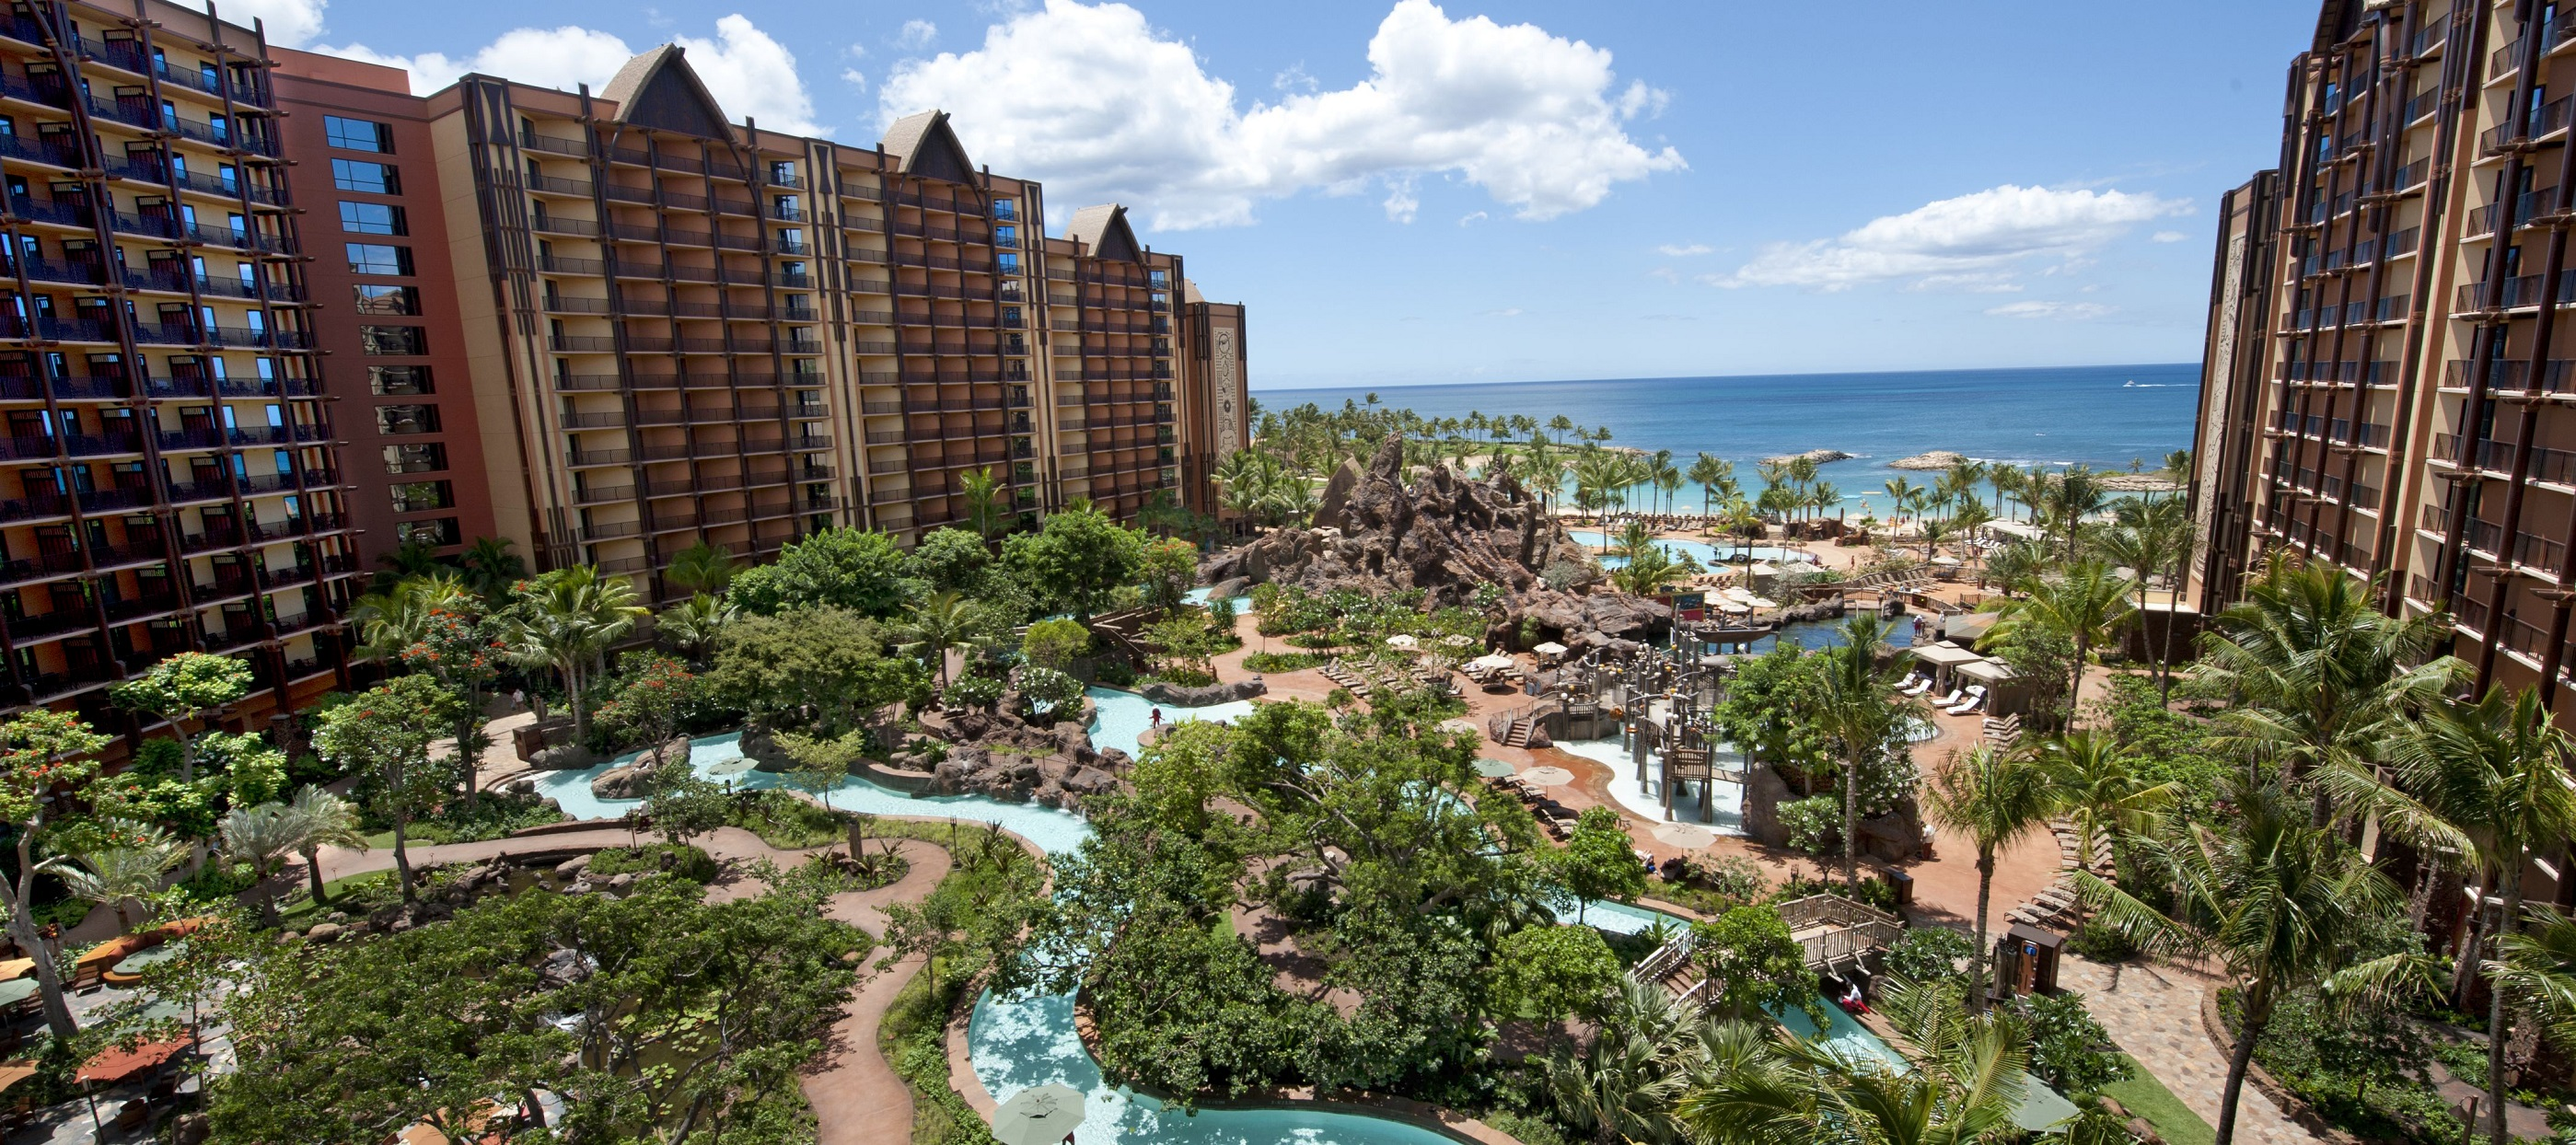 9 Reasons Aulani Hawaii Disney Resort is Totally Worth the Trip